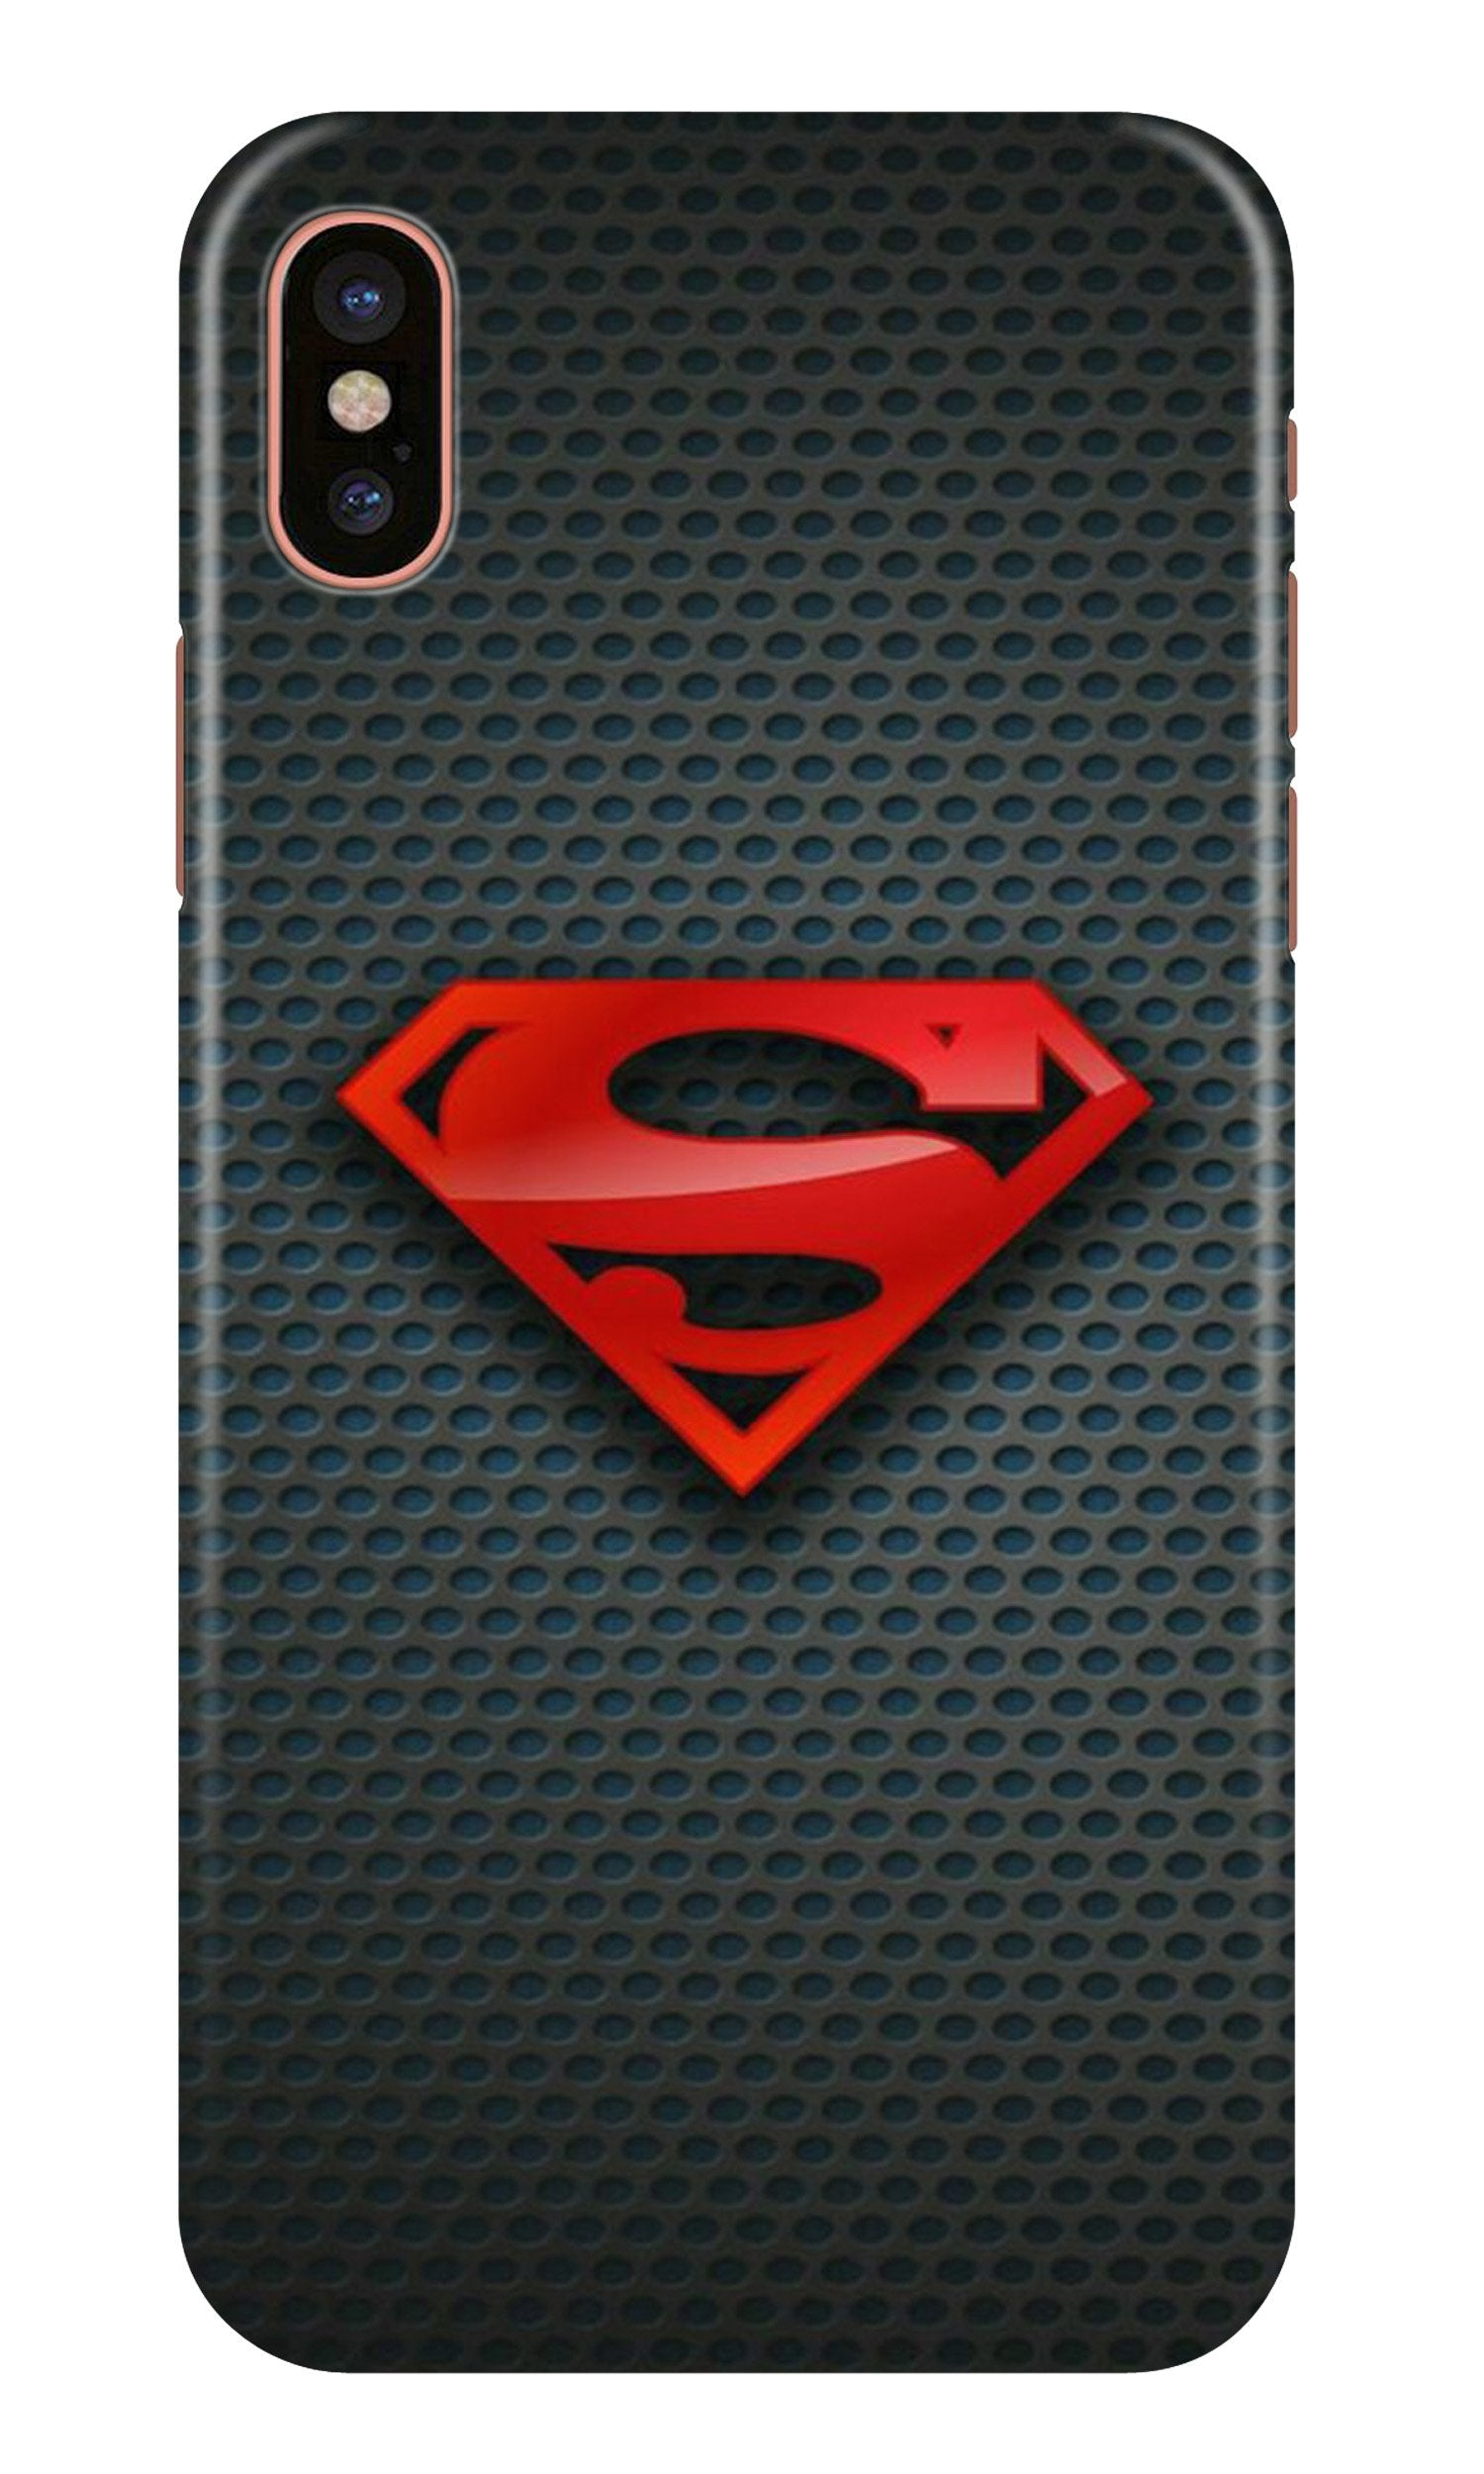 Superman Case for iPhone Xr (Design No. 247)